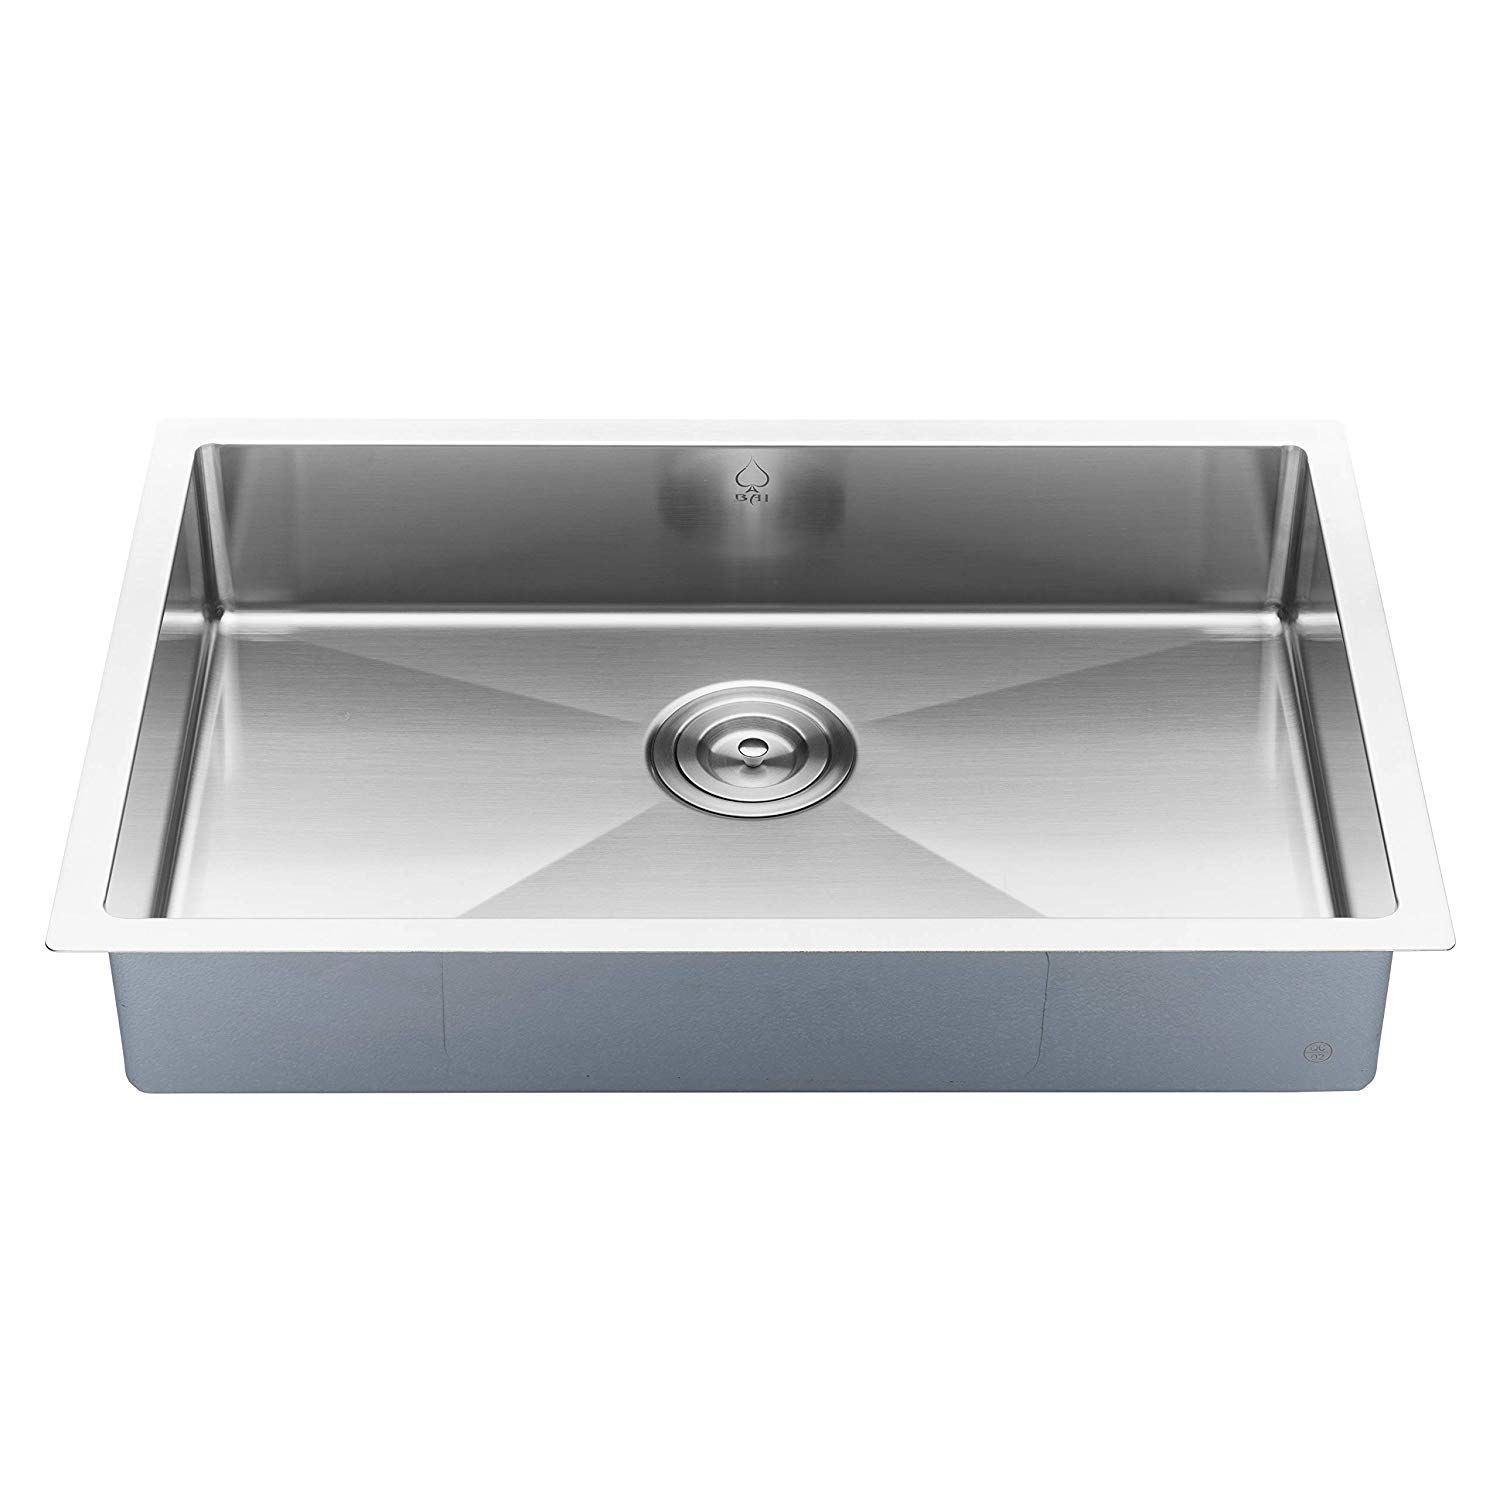 Bai 1247 27 Shallow Handmade Stainless Steel Kitchen Sink Single Bowl Under Mount 16 Gauge Amazon Com Porcelain Kitchen Sink Single Bowl Kitchen Sink Sink